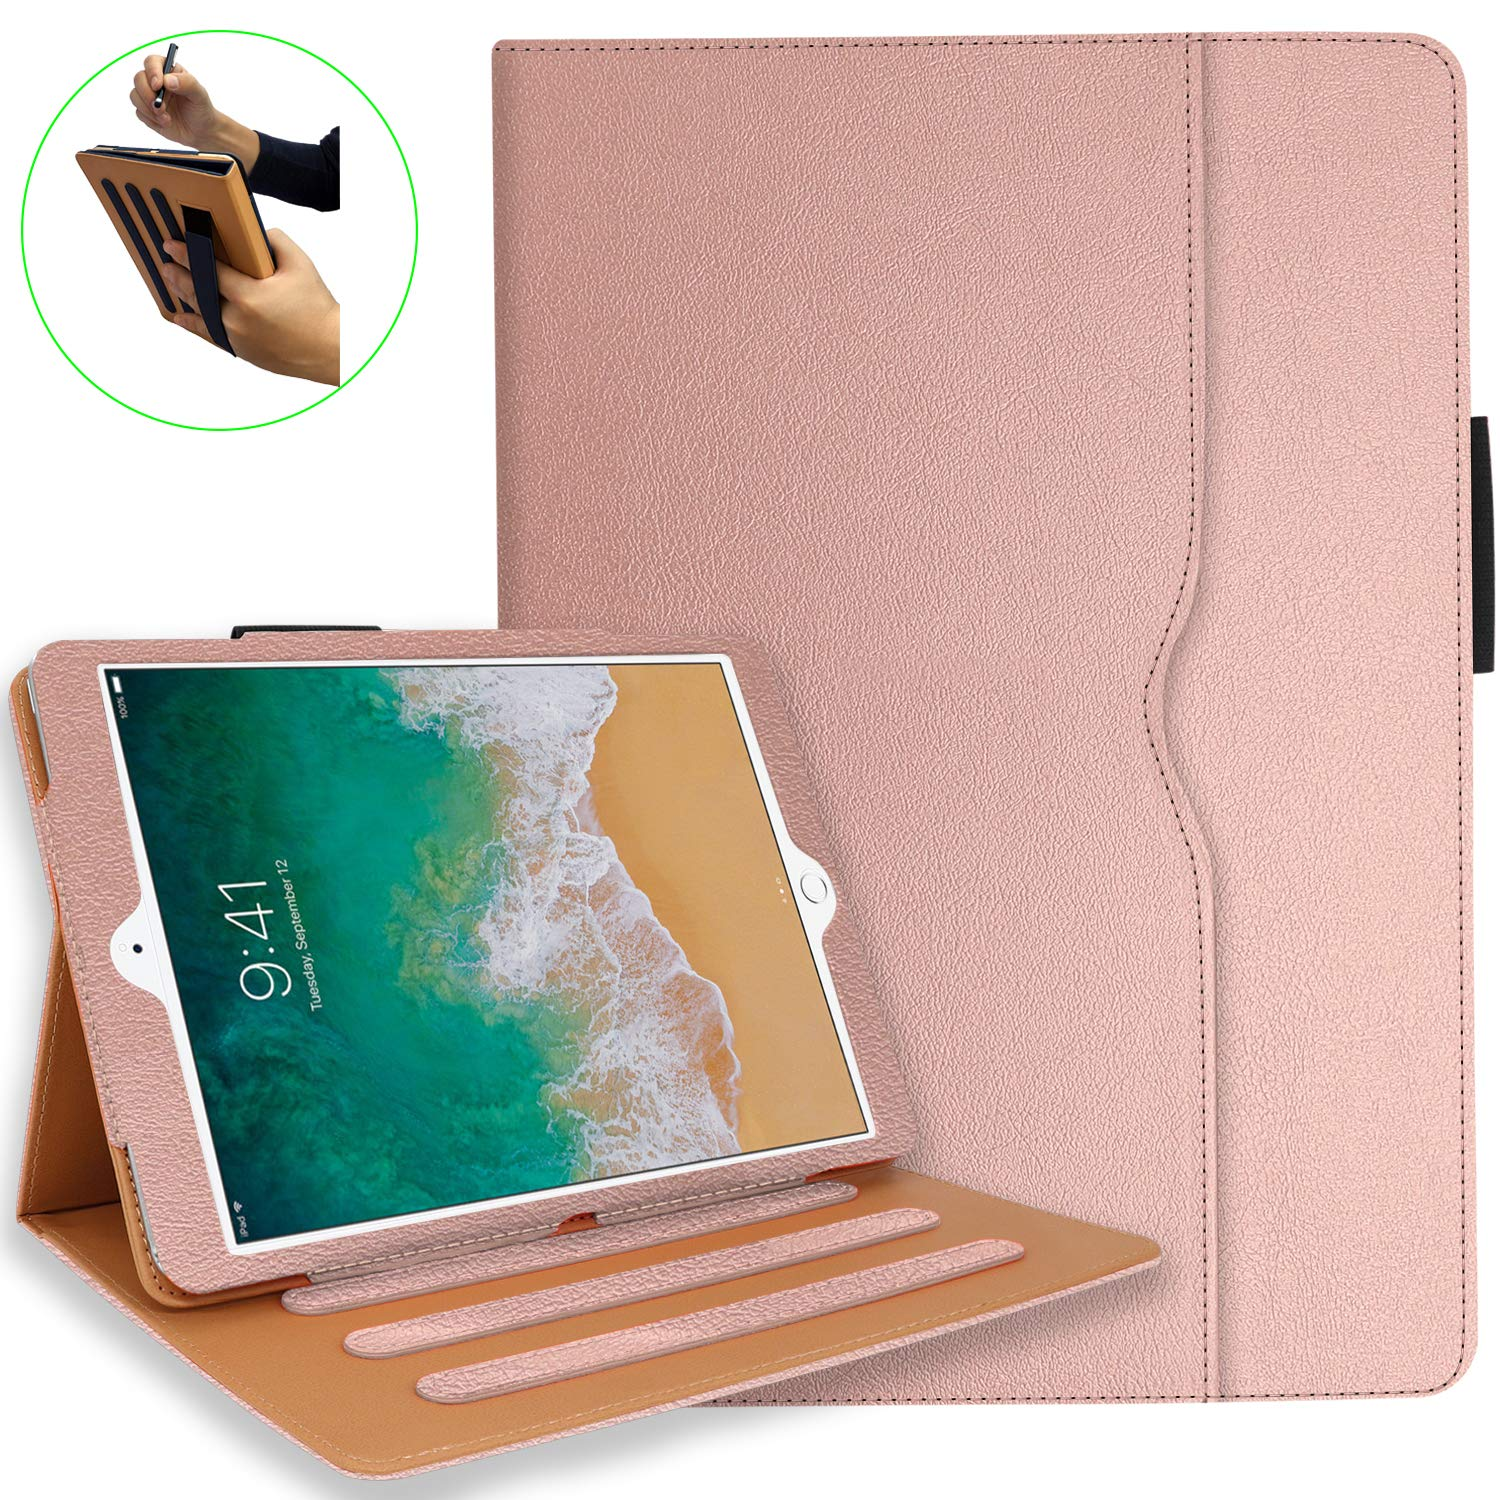 iPad 7th Generation Case, iPad 10.2 Case with Pencil Holder - Multi-Angle Stand, Hand Strap, Auto Sleep/Wake for iPad 7th Gen, iPad 10.2 2019(Rose Golden)